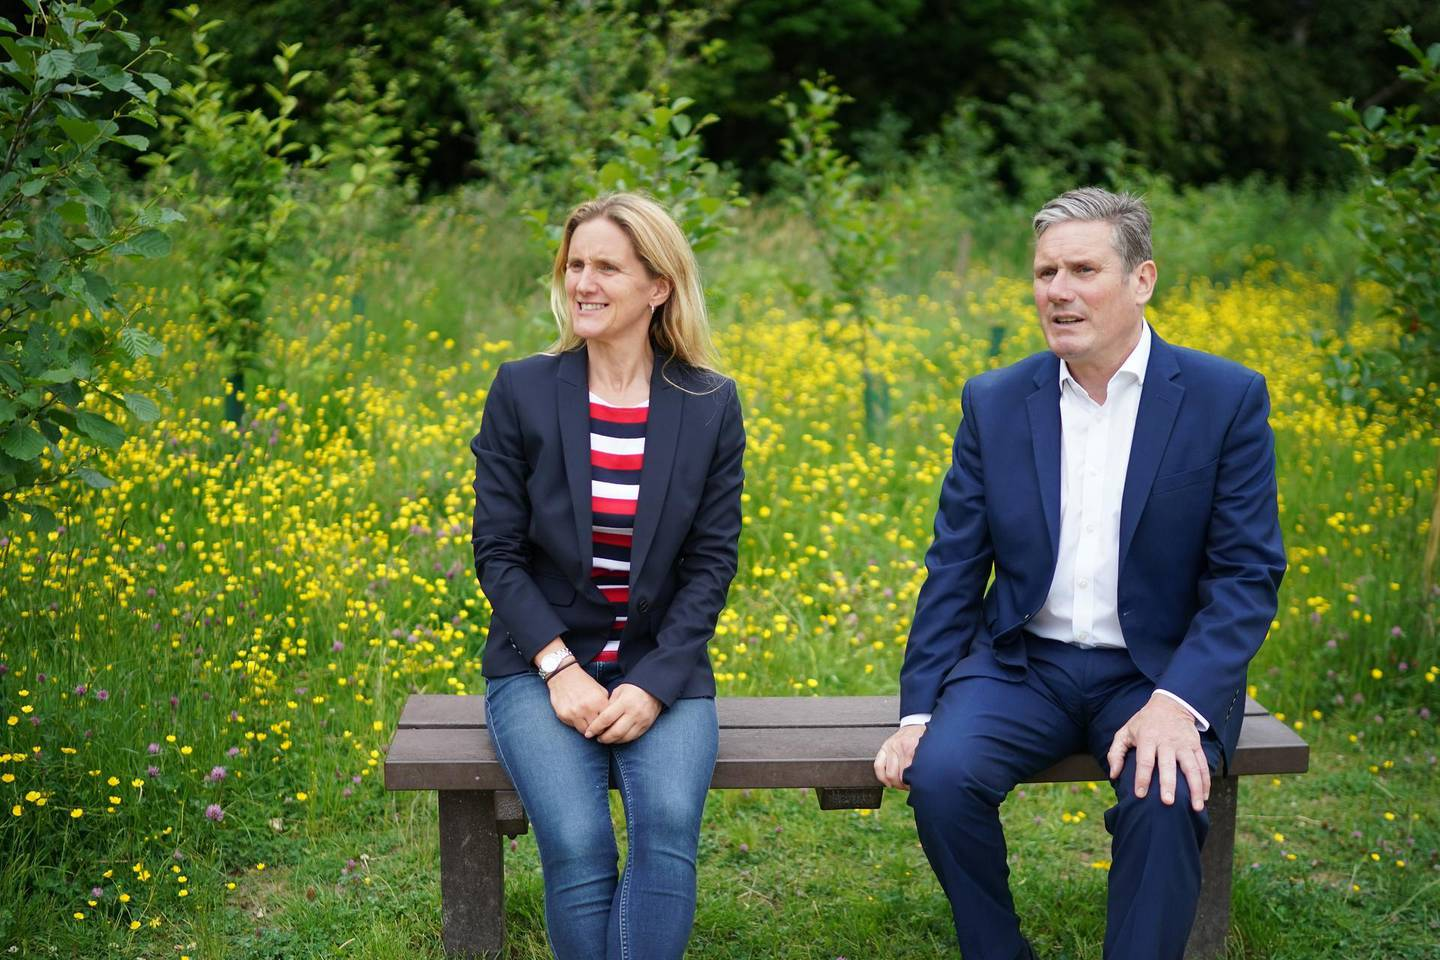 CLECKHEATON, ENGLAND - JUNE 10: Labour party leader Sir Keir Starmer and Batley and Spen by-election candidate Kim Leadbeater visit the Jo Cox Community Wood created in memory of Jo Cox MP, the sister of Kim Leadbeater, on June 10, 2021 in Cleckheaton, England. Kim Leadbeater is campaigning for the Batley and Spen seat after MP Tracy Brabin stepped down to become West Yorkshire's Metro Mayor. The Batley and Spen seat was once held by Kim Leadbeater's sister Jo Cox MP, who was murdered by a far-right extremist in 2016. (Photo by Christopher Furlong/Getty Images)